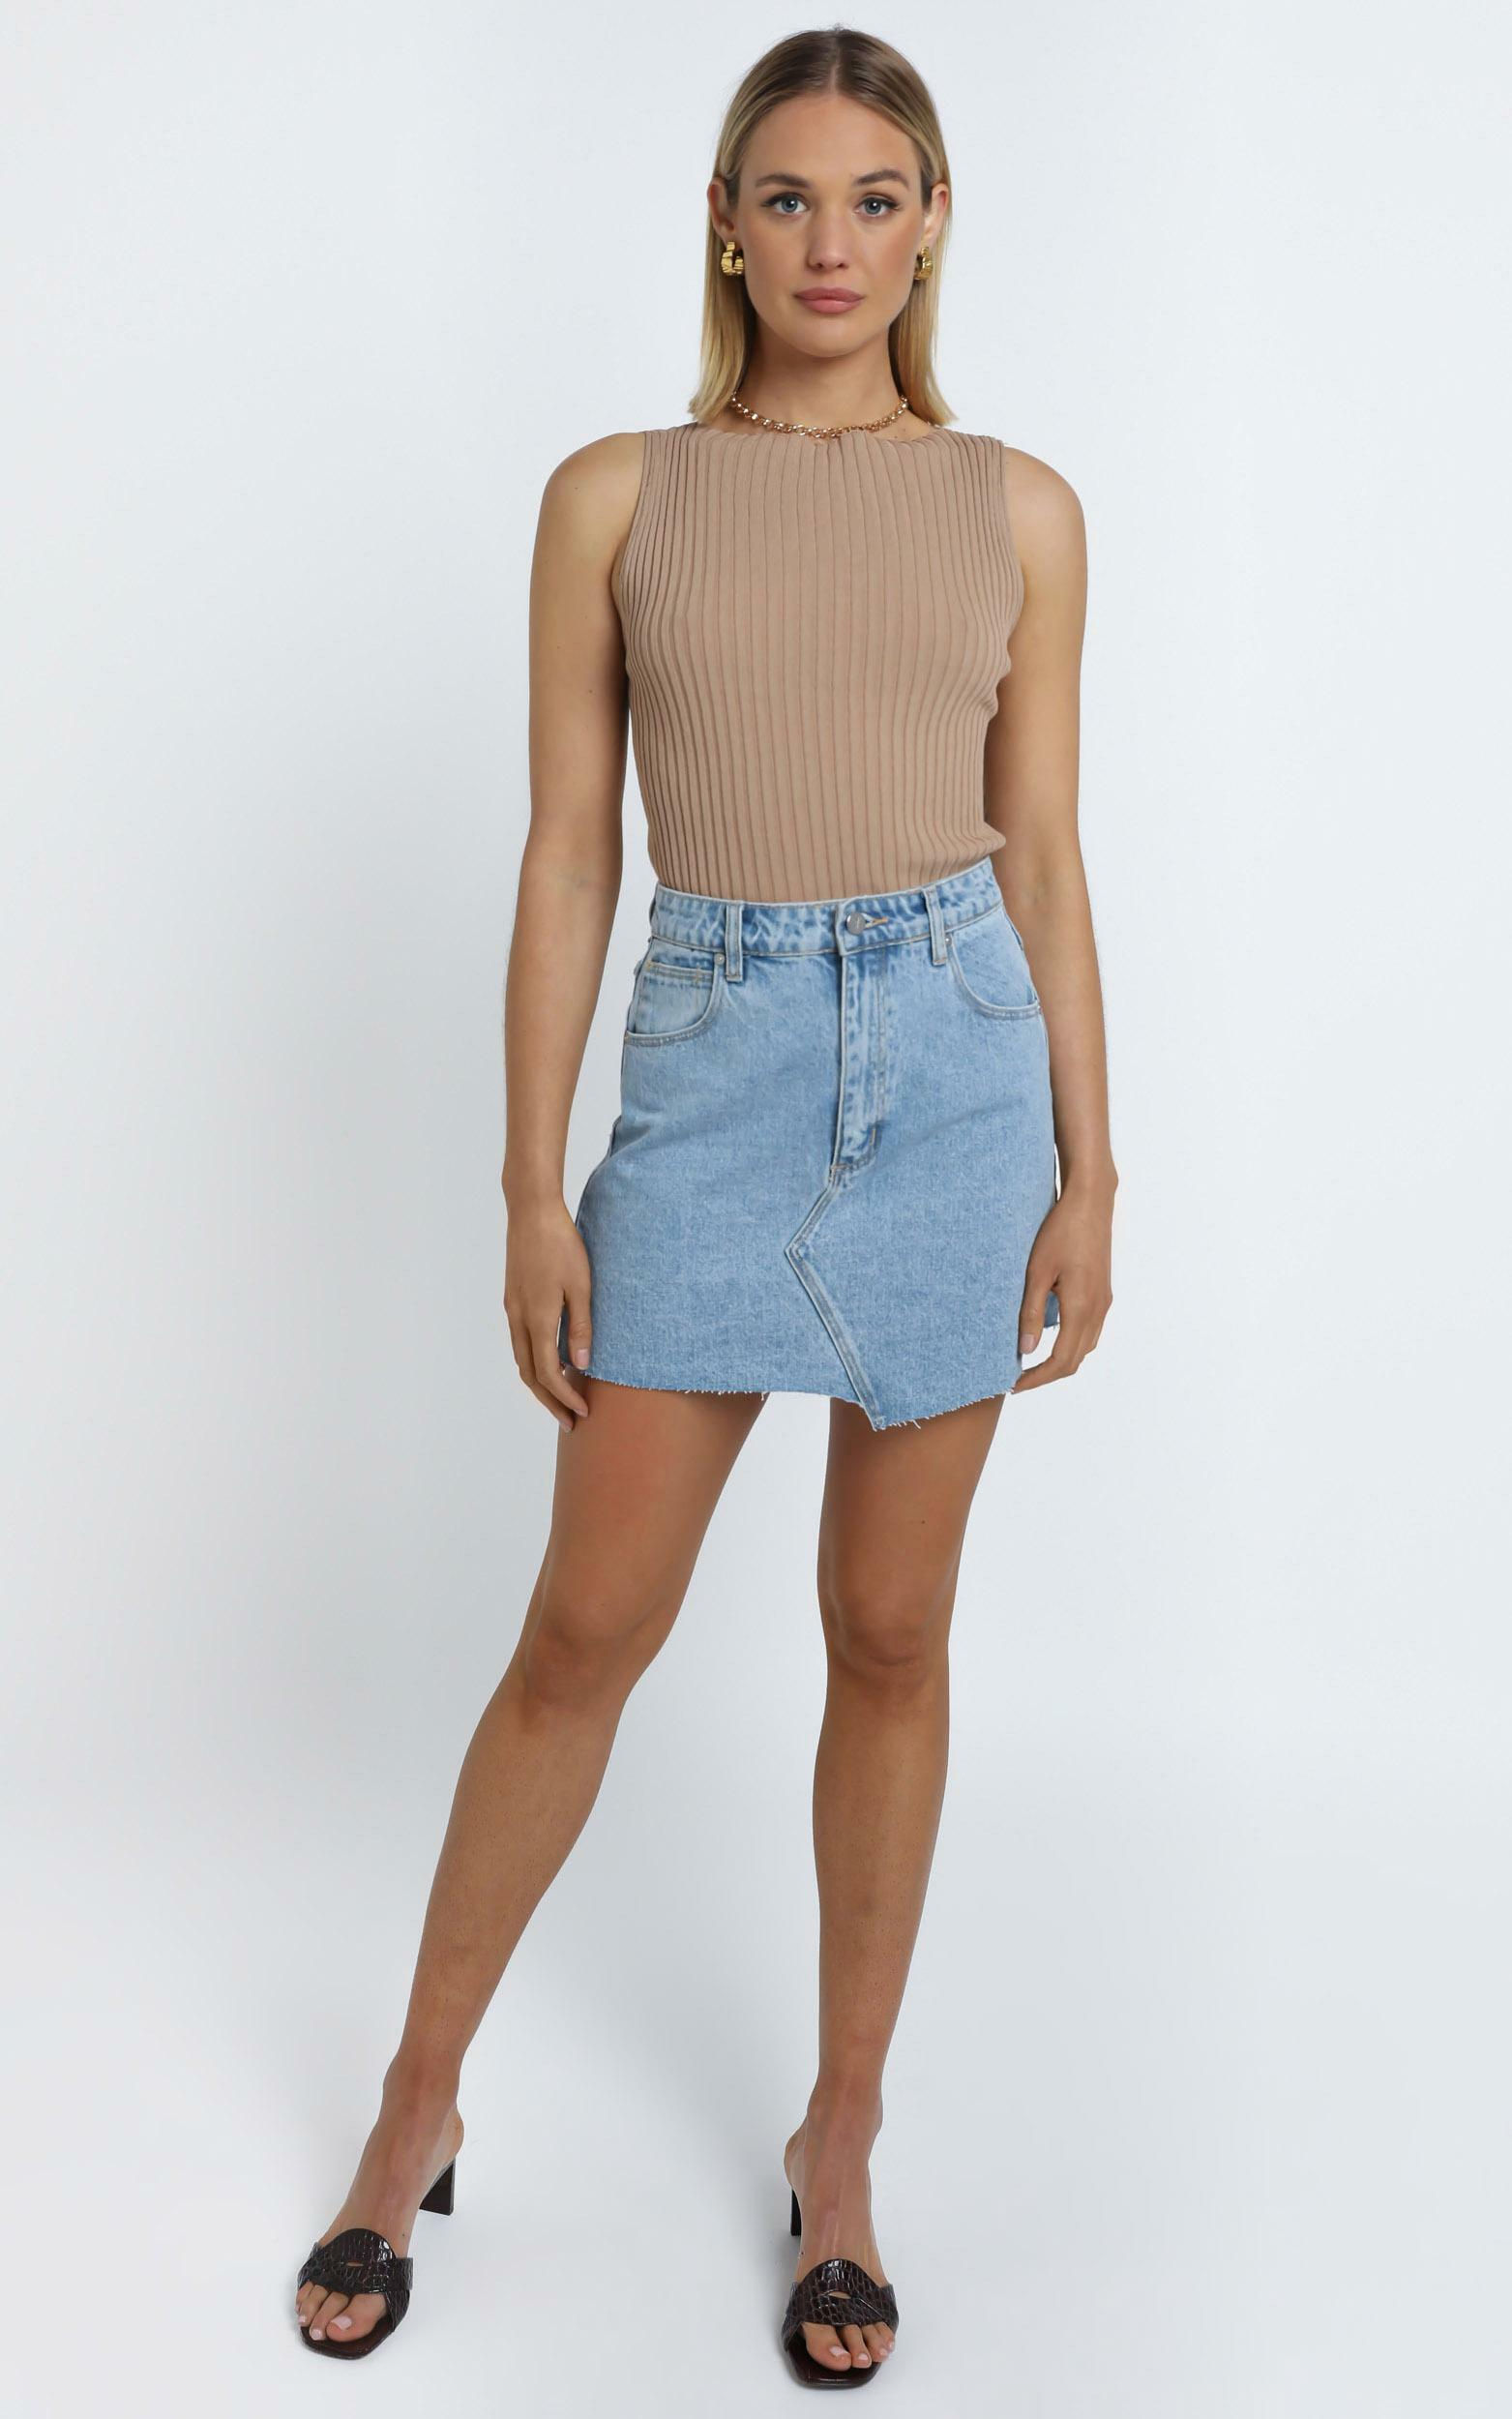 Abrand - A Aline Denim Skirt in Bleach Bomb - 14 (XL), Blue, hi-res image number null